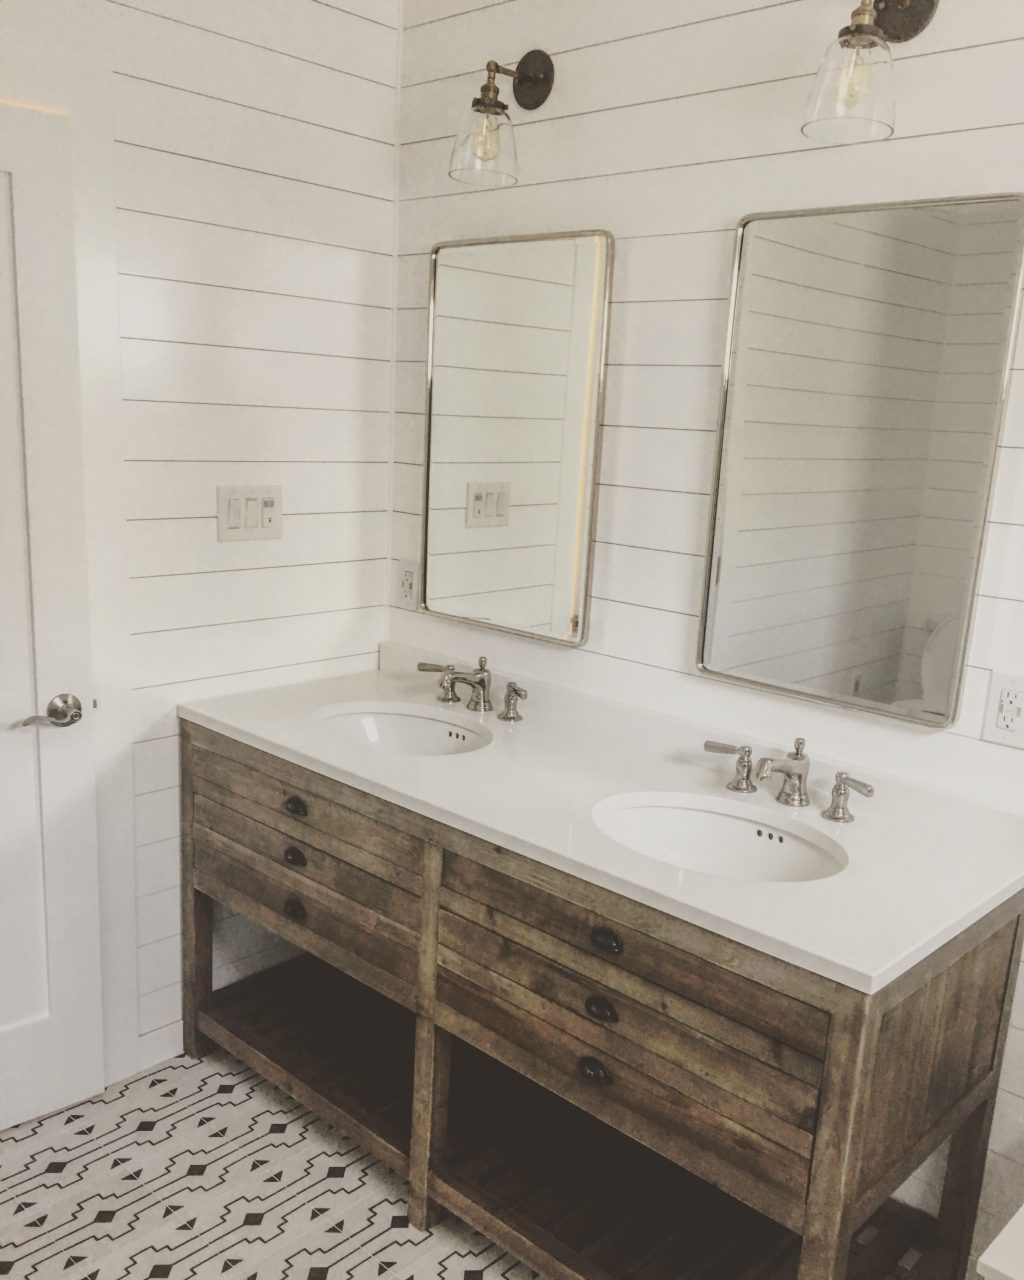 Family Bathroom Restoration Hardware Vanity Restoration Hardware